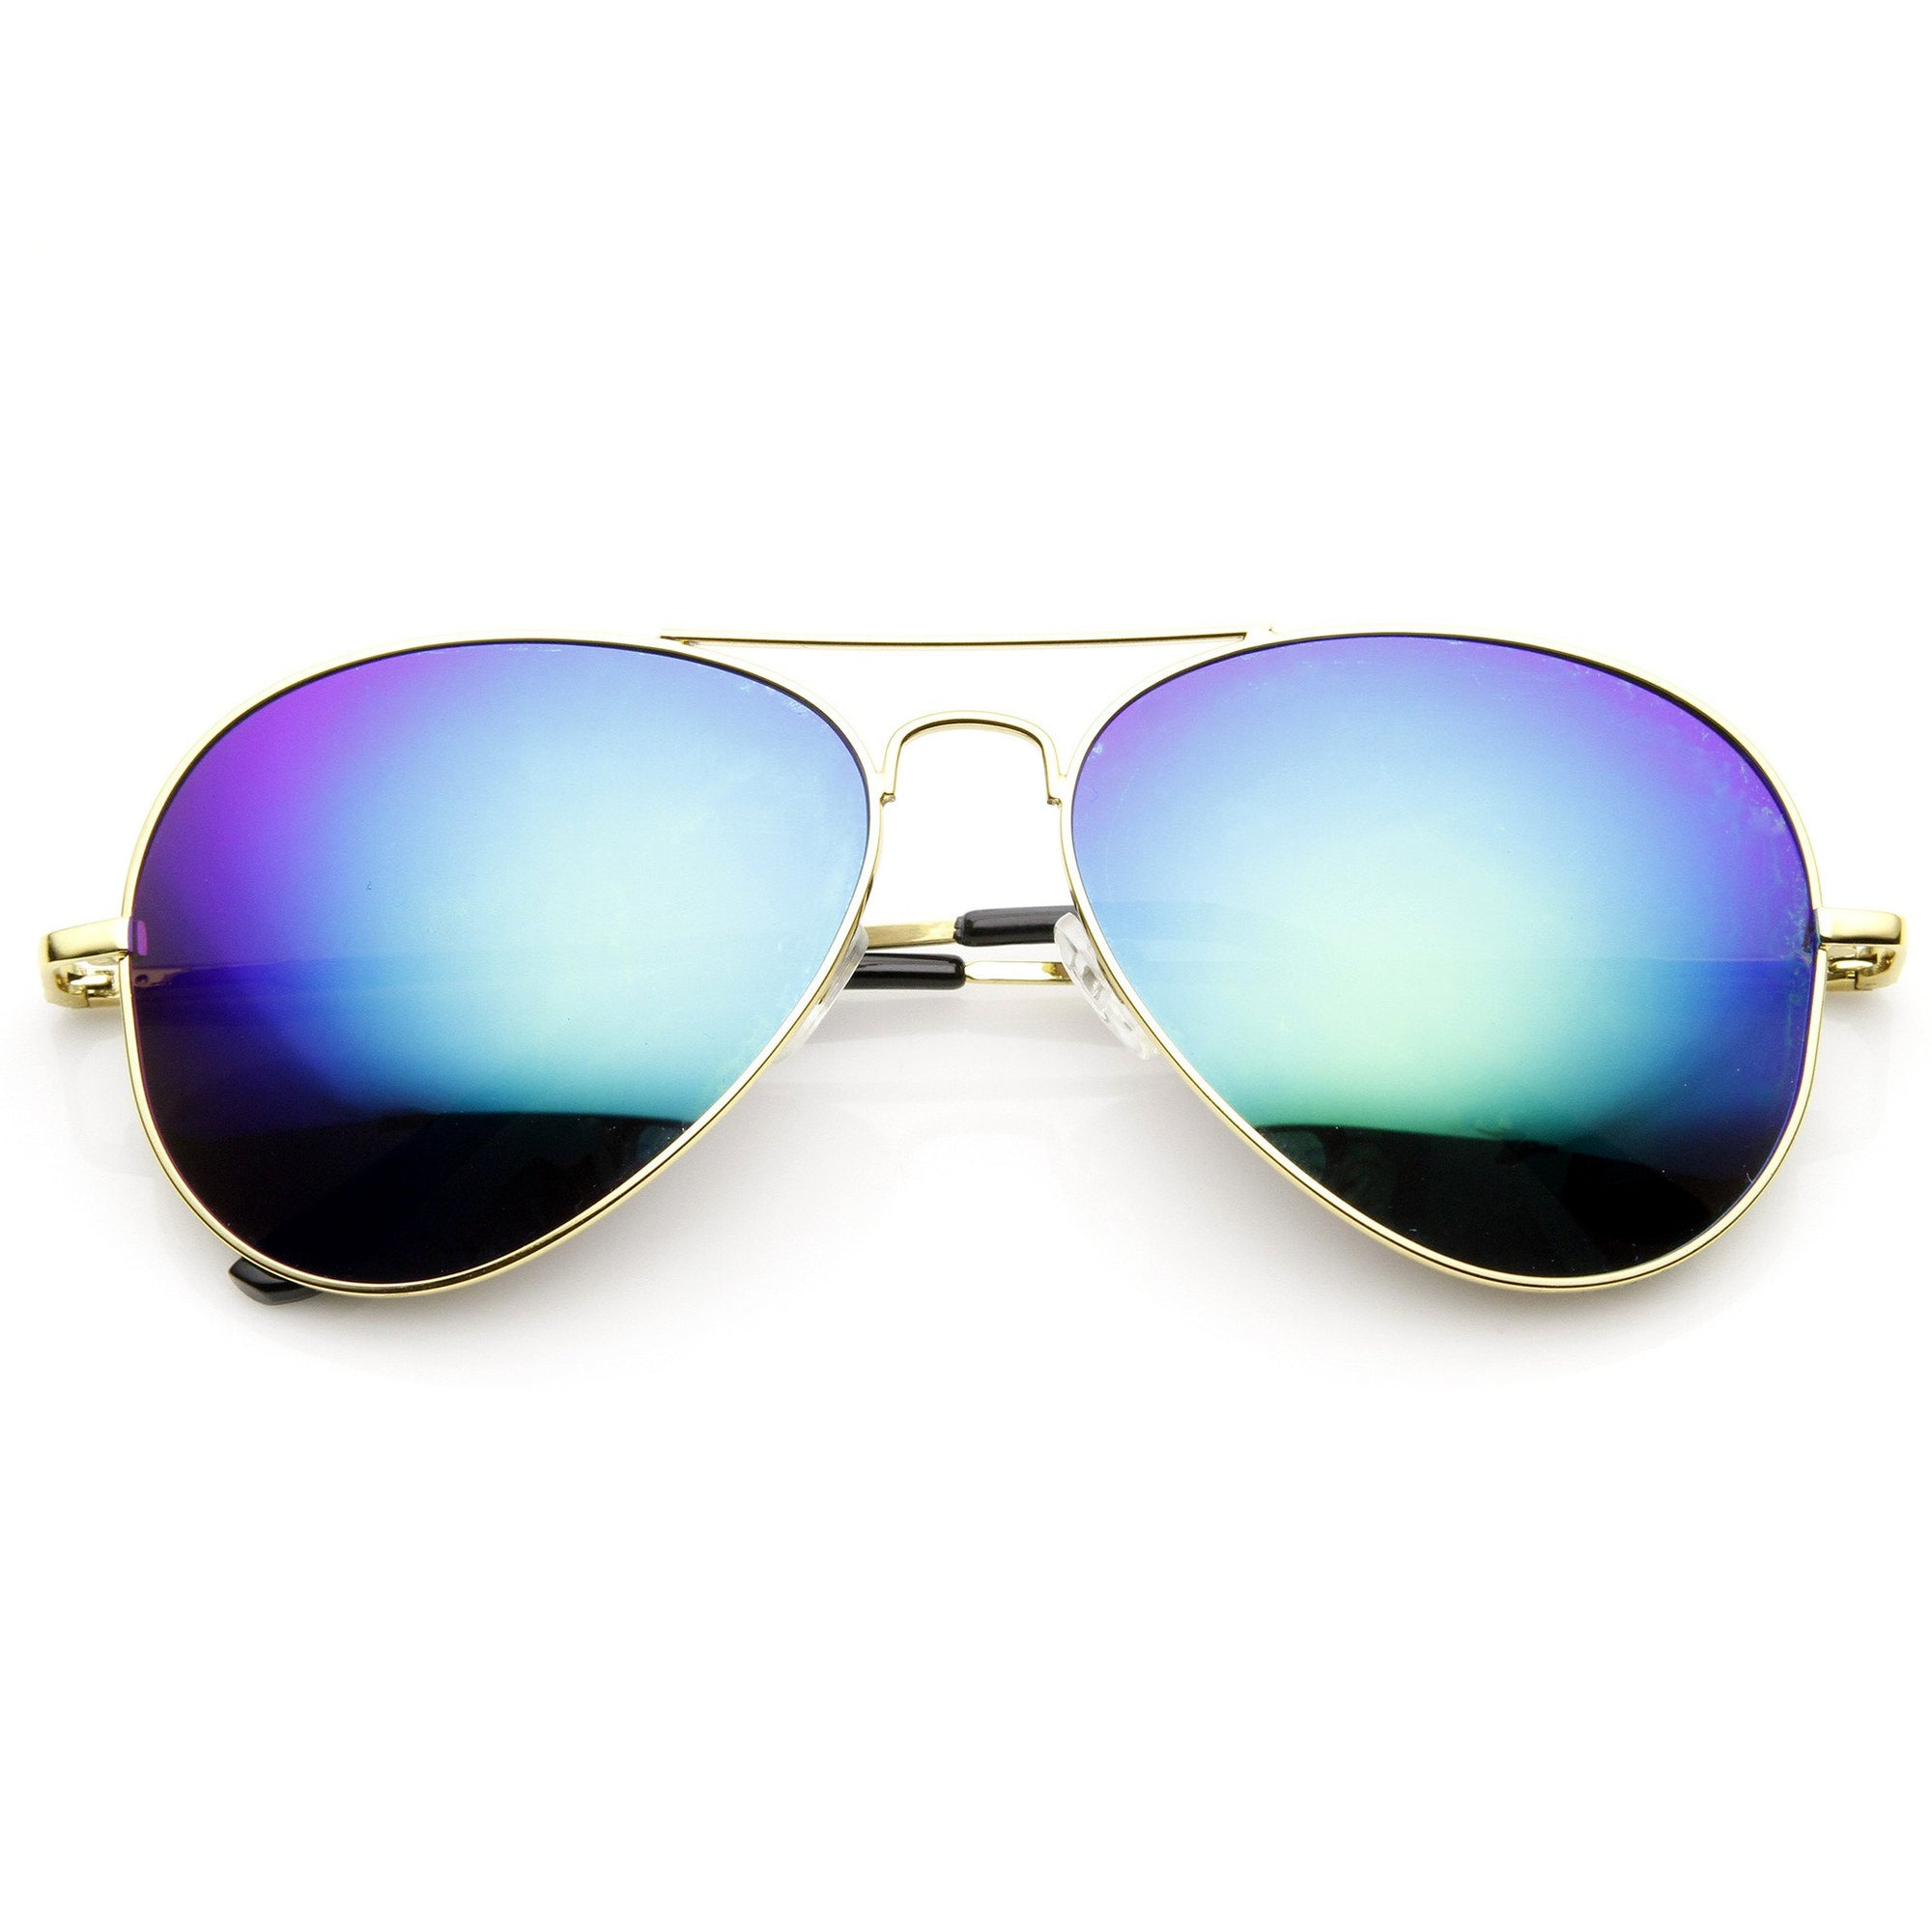 275dd26452 ... Full Gold Frame Flash Color Mirrored Lens Sunglasses 1486 · Blue Mirror